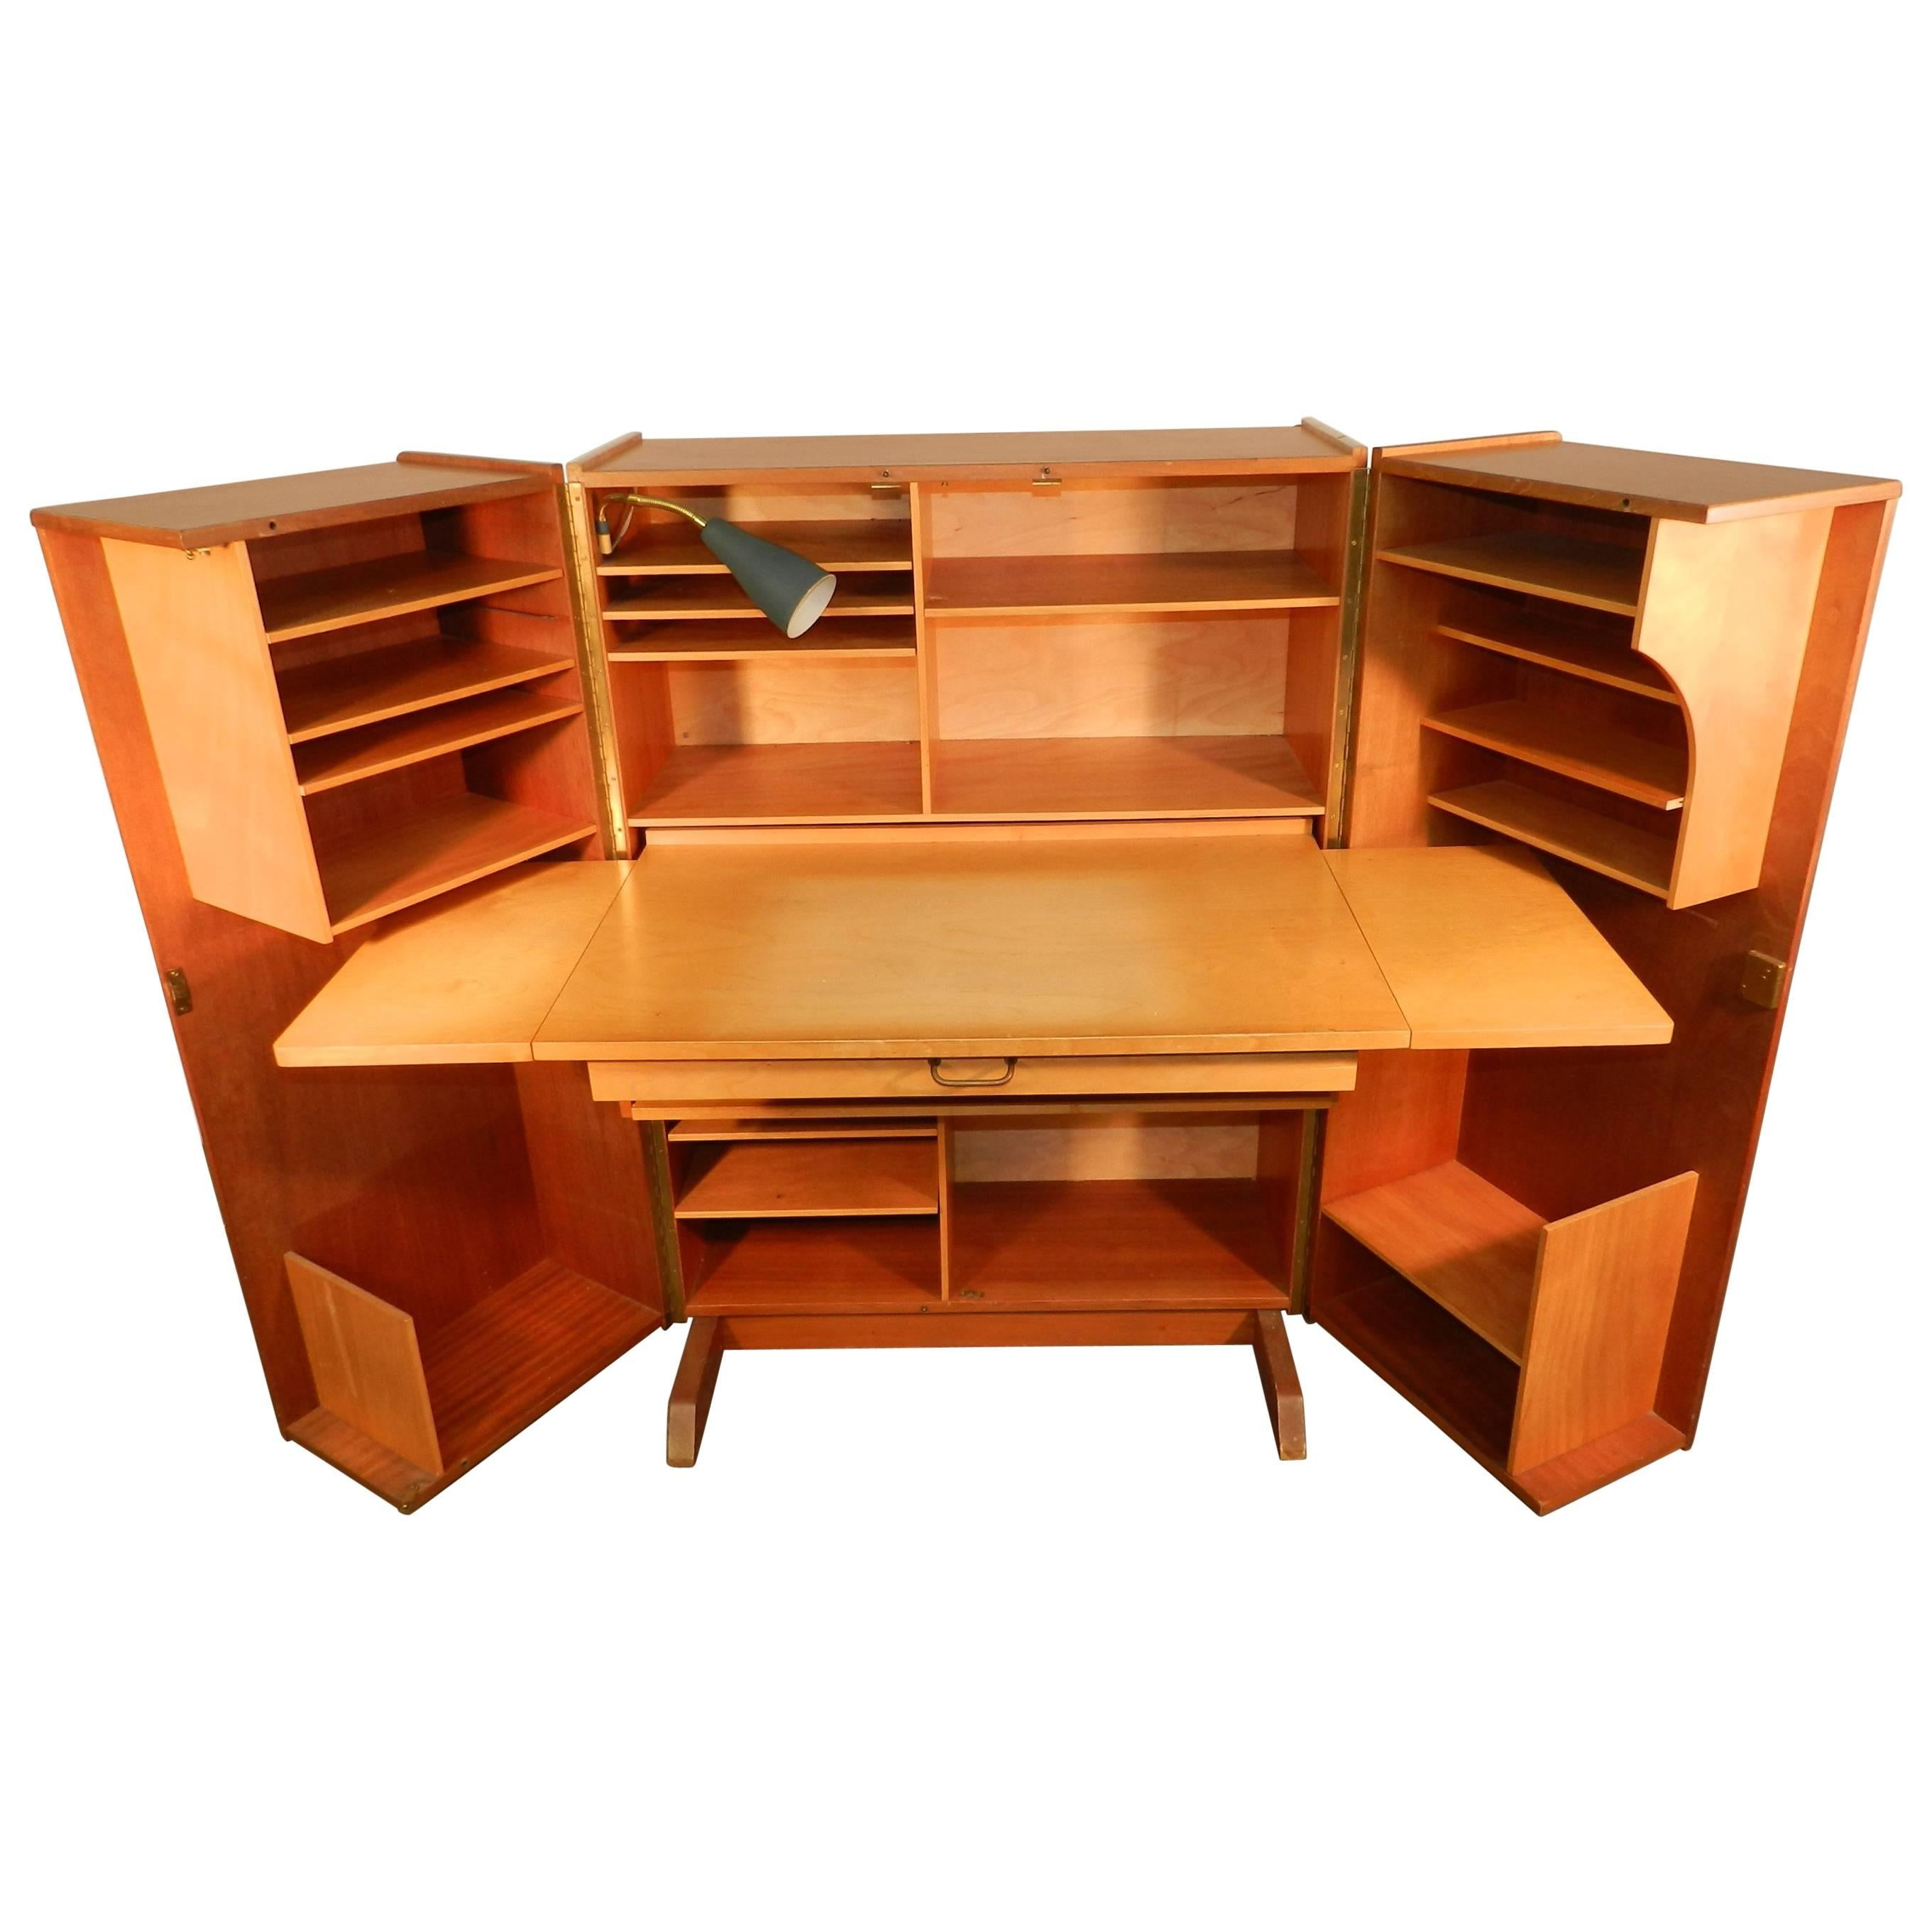 Mahogany Office Desk 1950 Compact Home Office Desk In Mahogany And Blond Wood